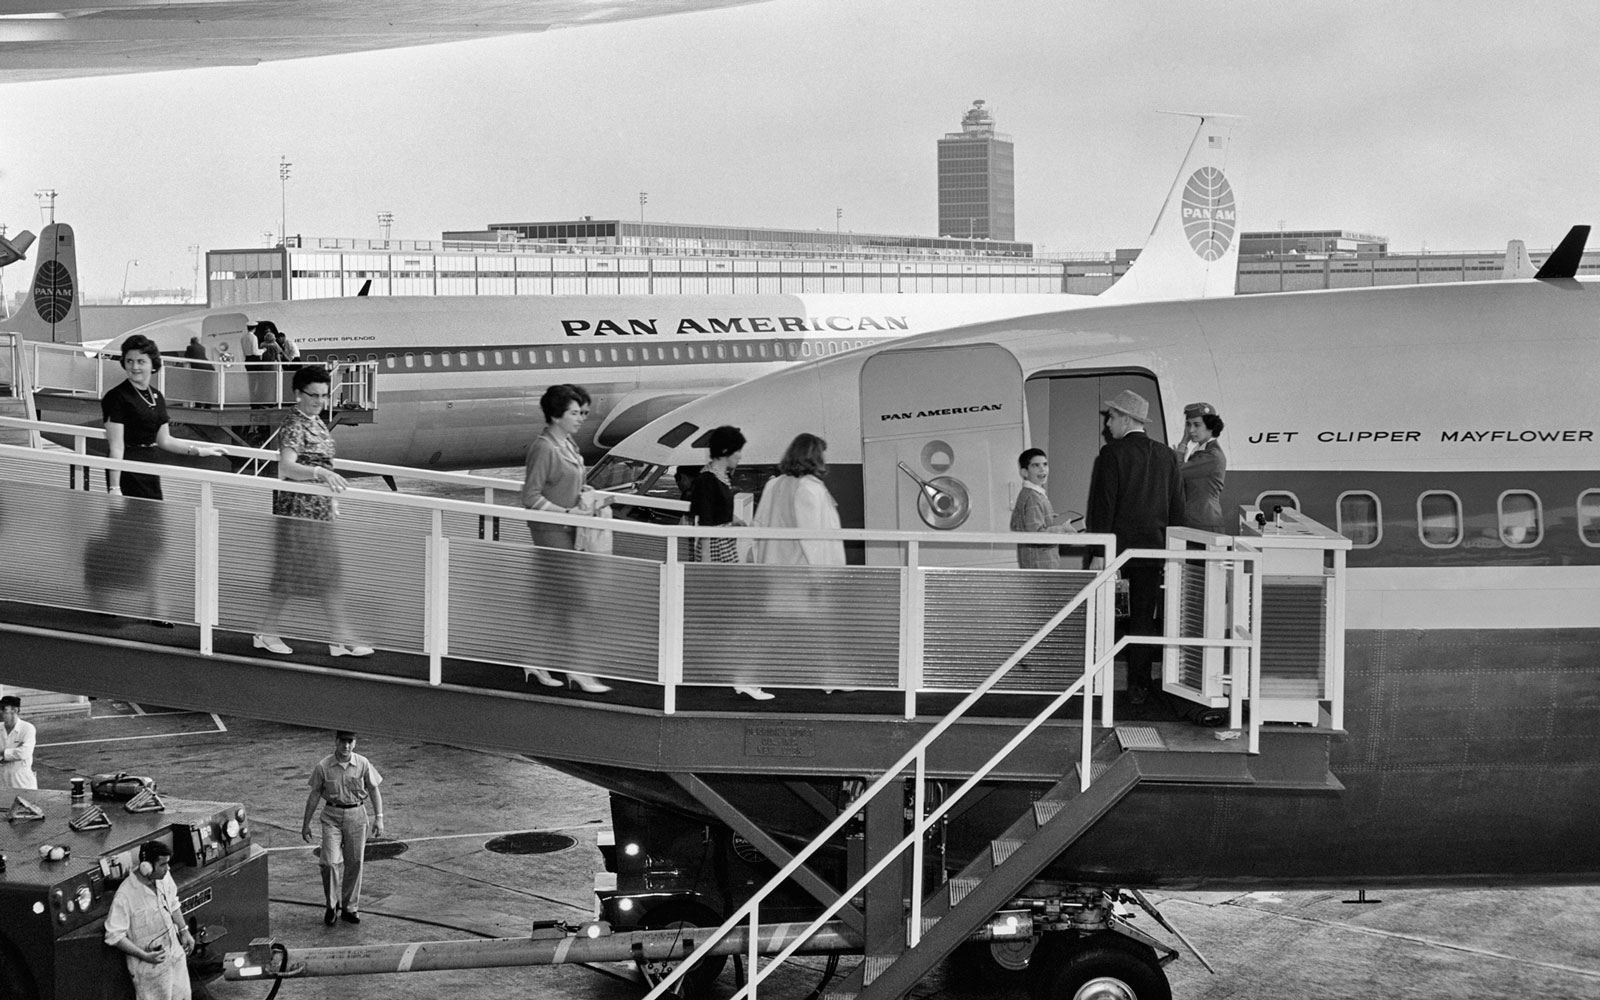 Passengers board a plane in the 1950s.